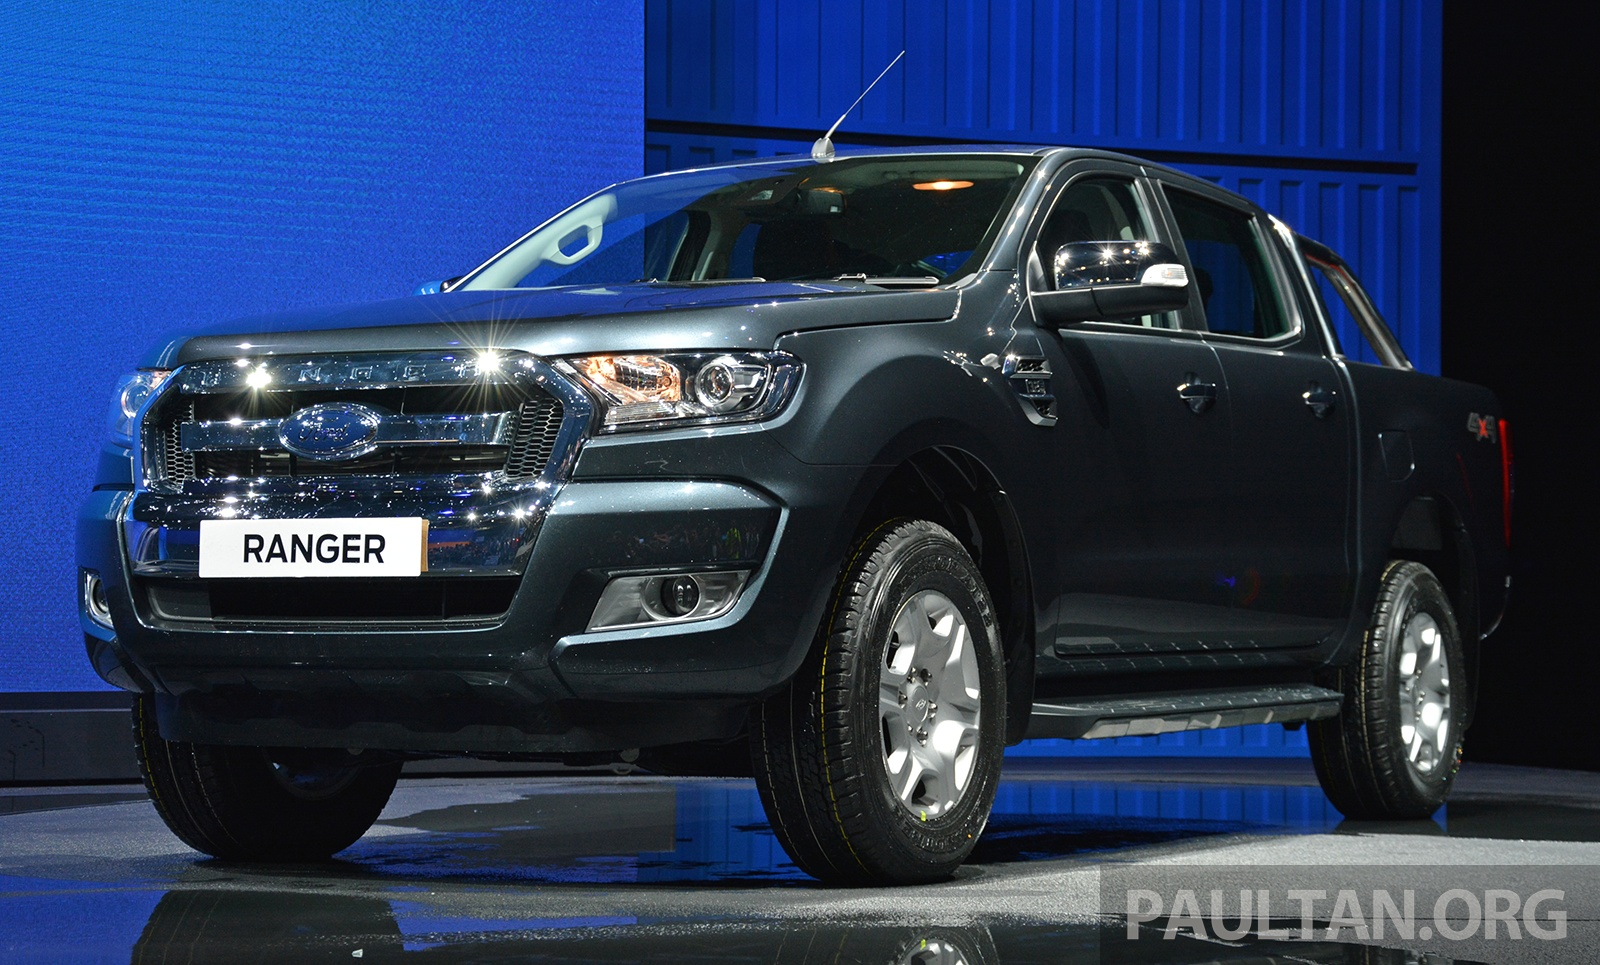 2015 ford ranger makes world debut in thailand image 320431. Black Bedroom Furniture Sets. Home Design Ideas